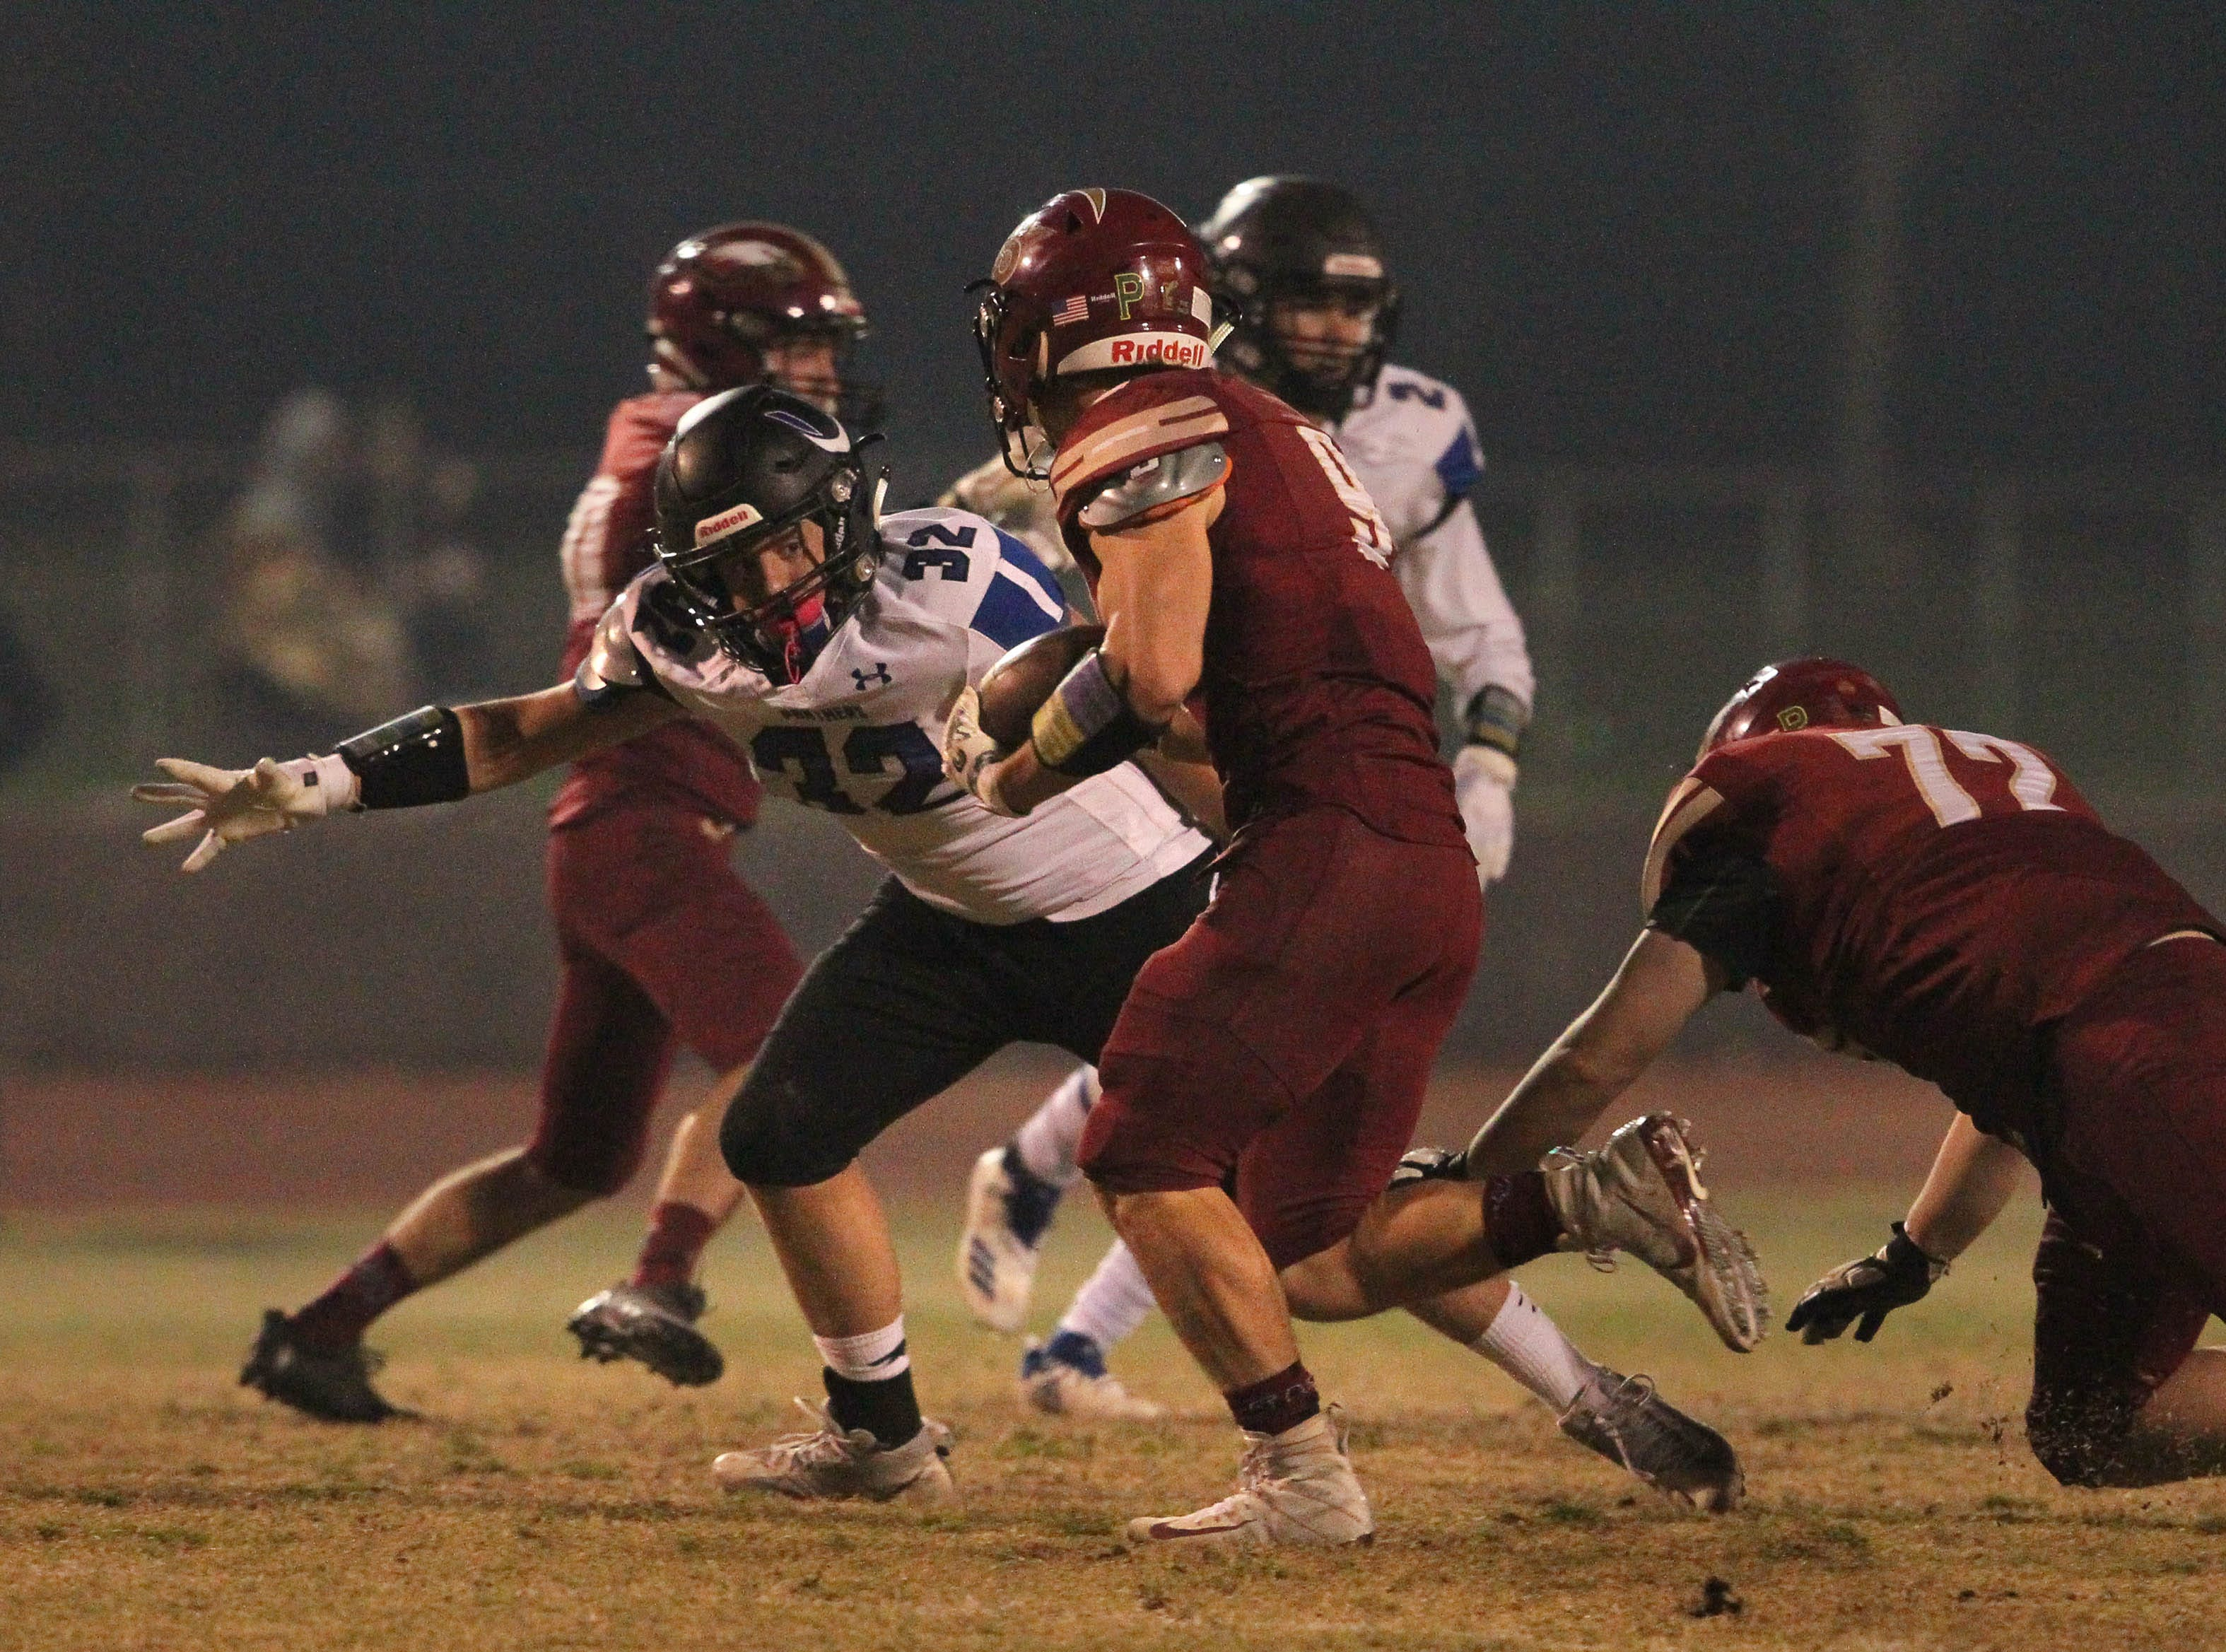 U-Prep's  Jacob Reuss (32) looks to make a tackle on West Valley's Cade Lambert (9) in the 2nd quarter on Friday, Nov. 9.   The Eagles defeated the Panthers, 55 -6, at home to advance to the 2nd round against Lassen on Nov. 16.